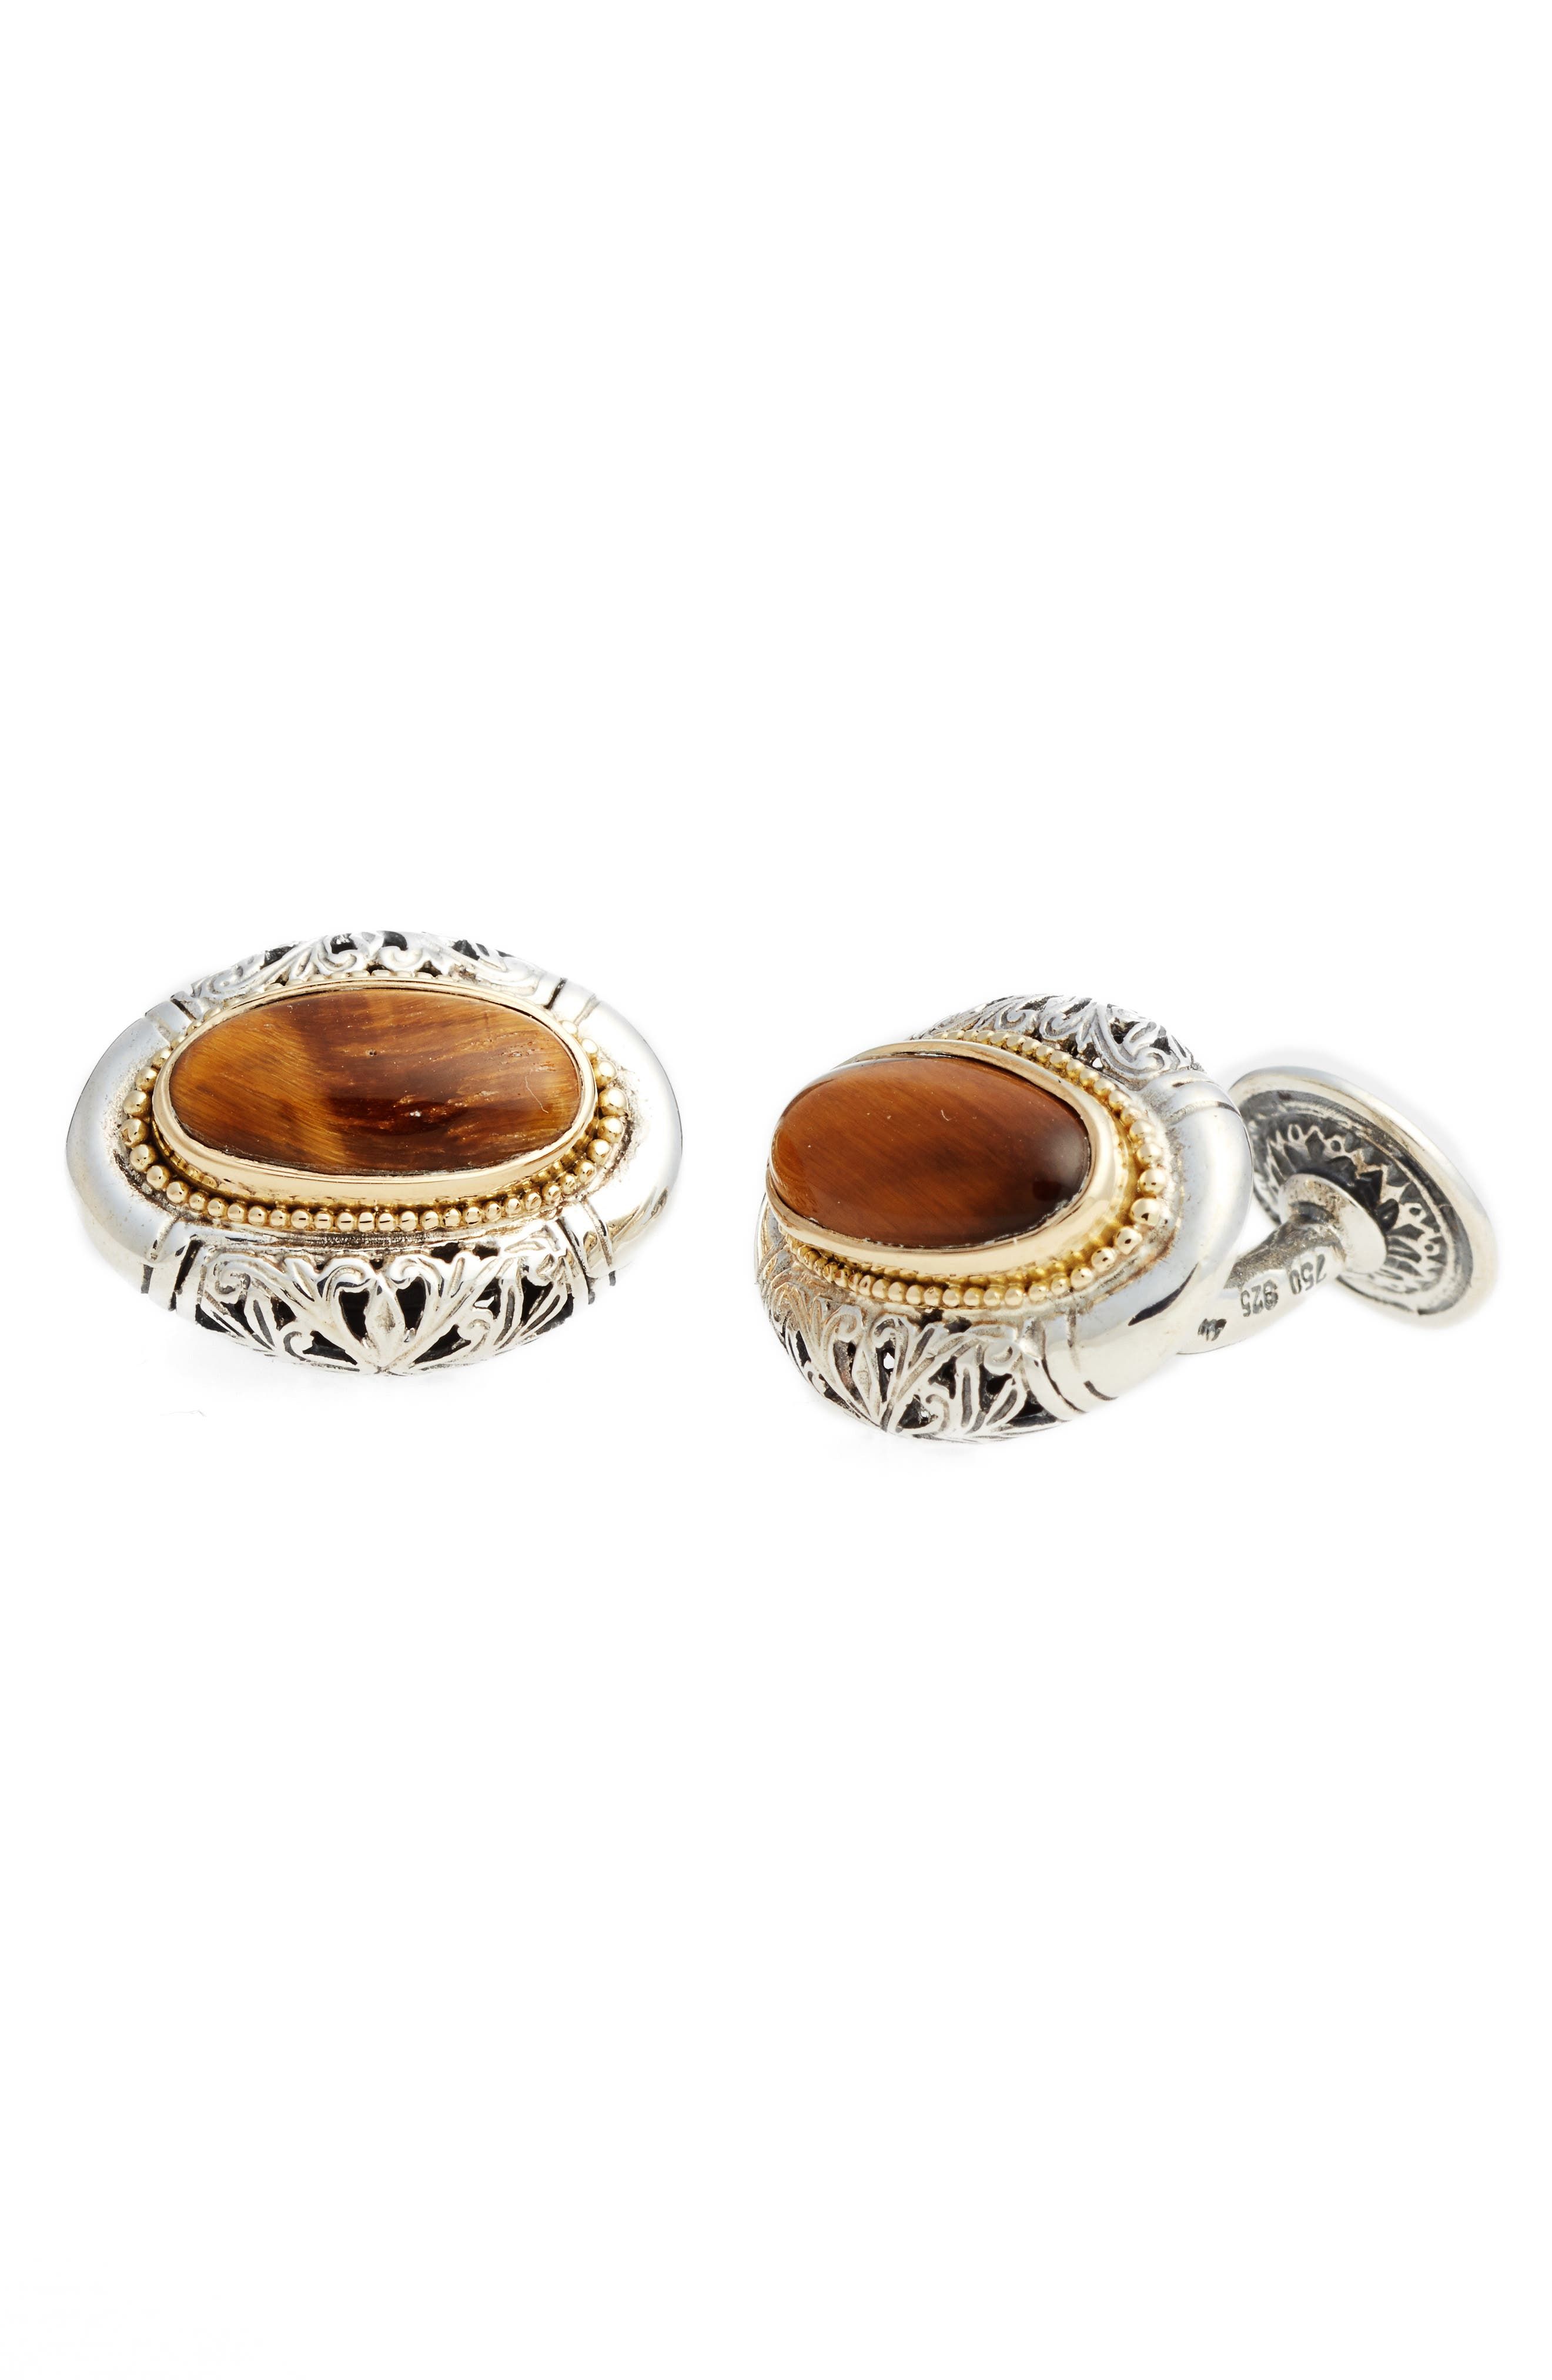 Color Classics Oval Cuff Links,                             Main thumbnail 1, color,                             Silver/ Gold/ Tigers Eye